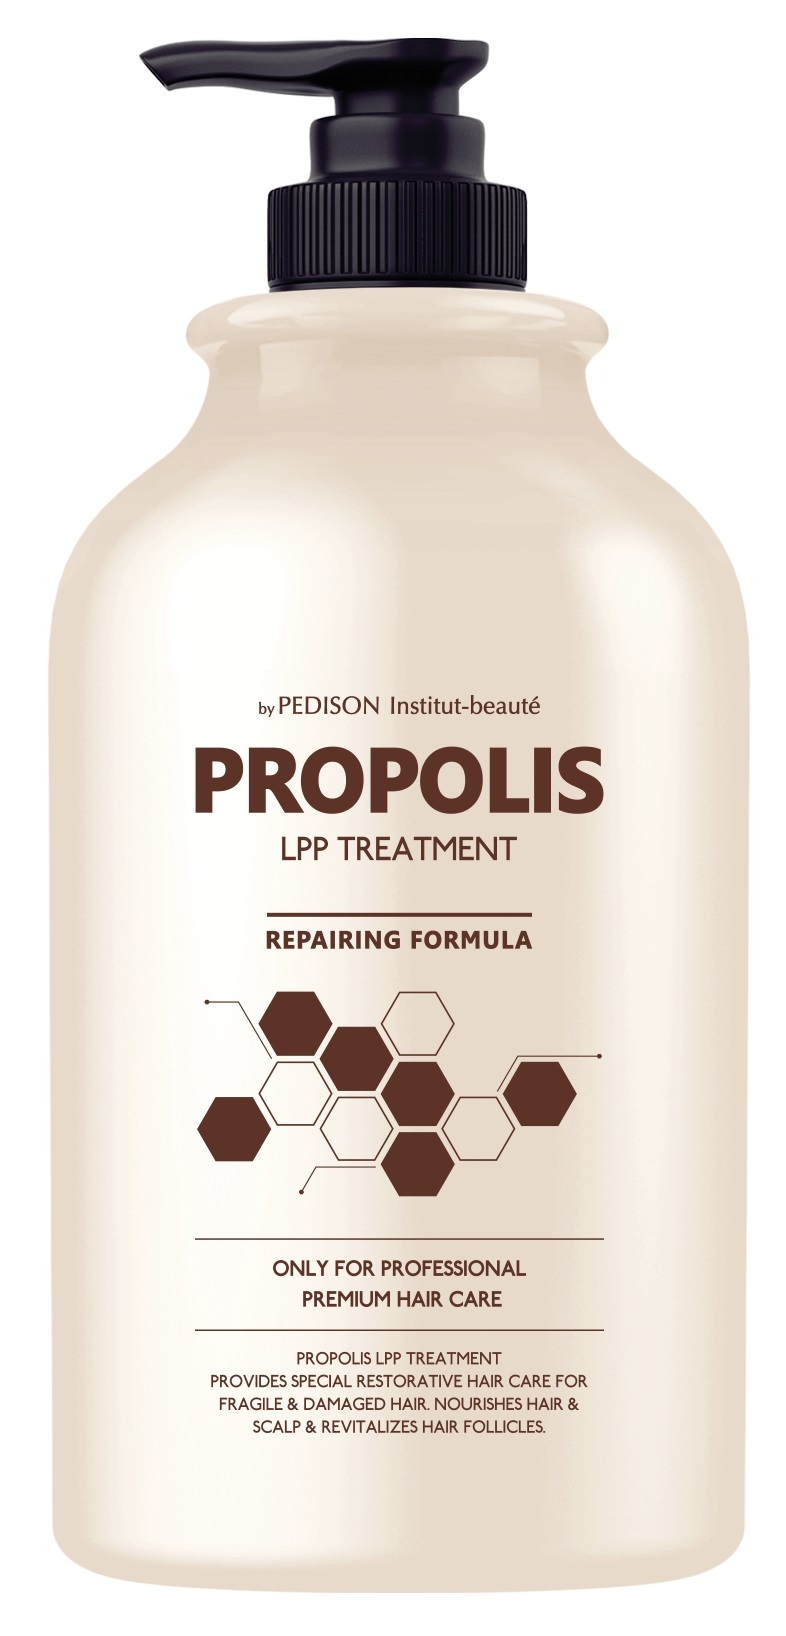 Маски [Pedison] Маска для волос ПРОПОЛИС Institut-Beaute Propolis LPP Treatment, 500 мл 004563.jpg